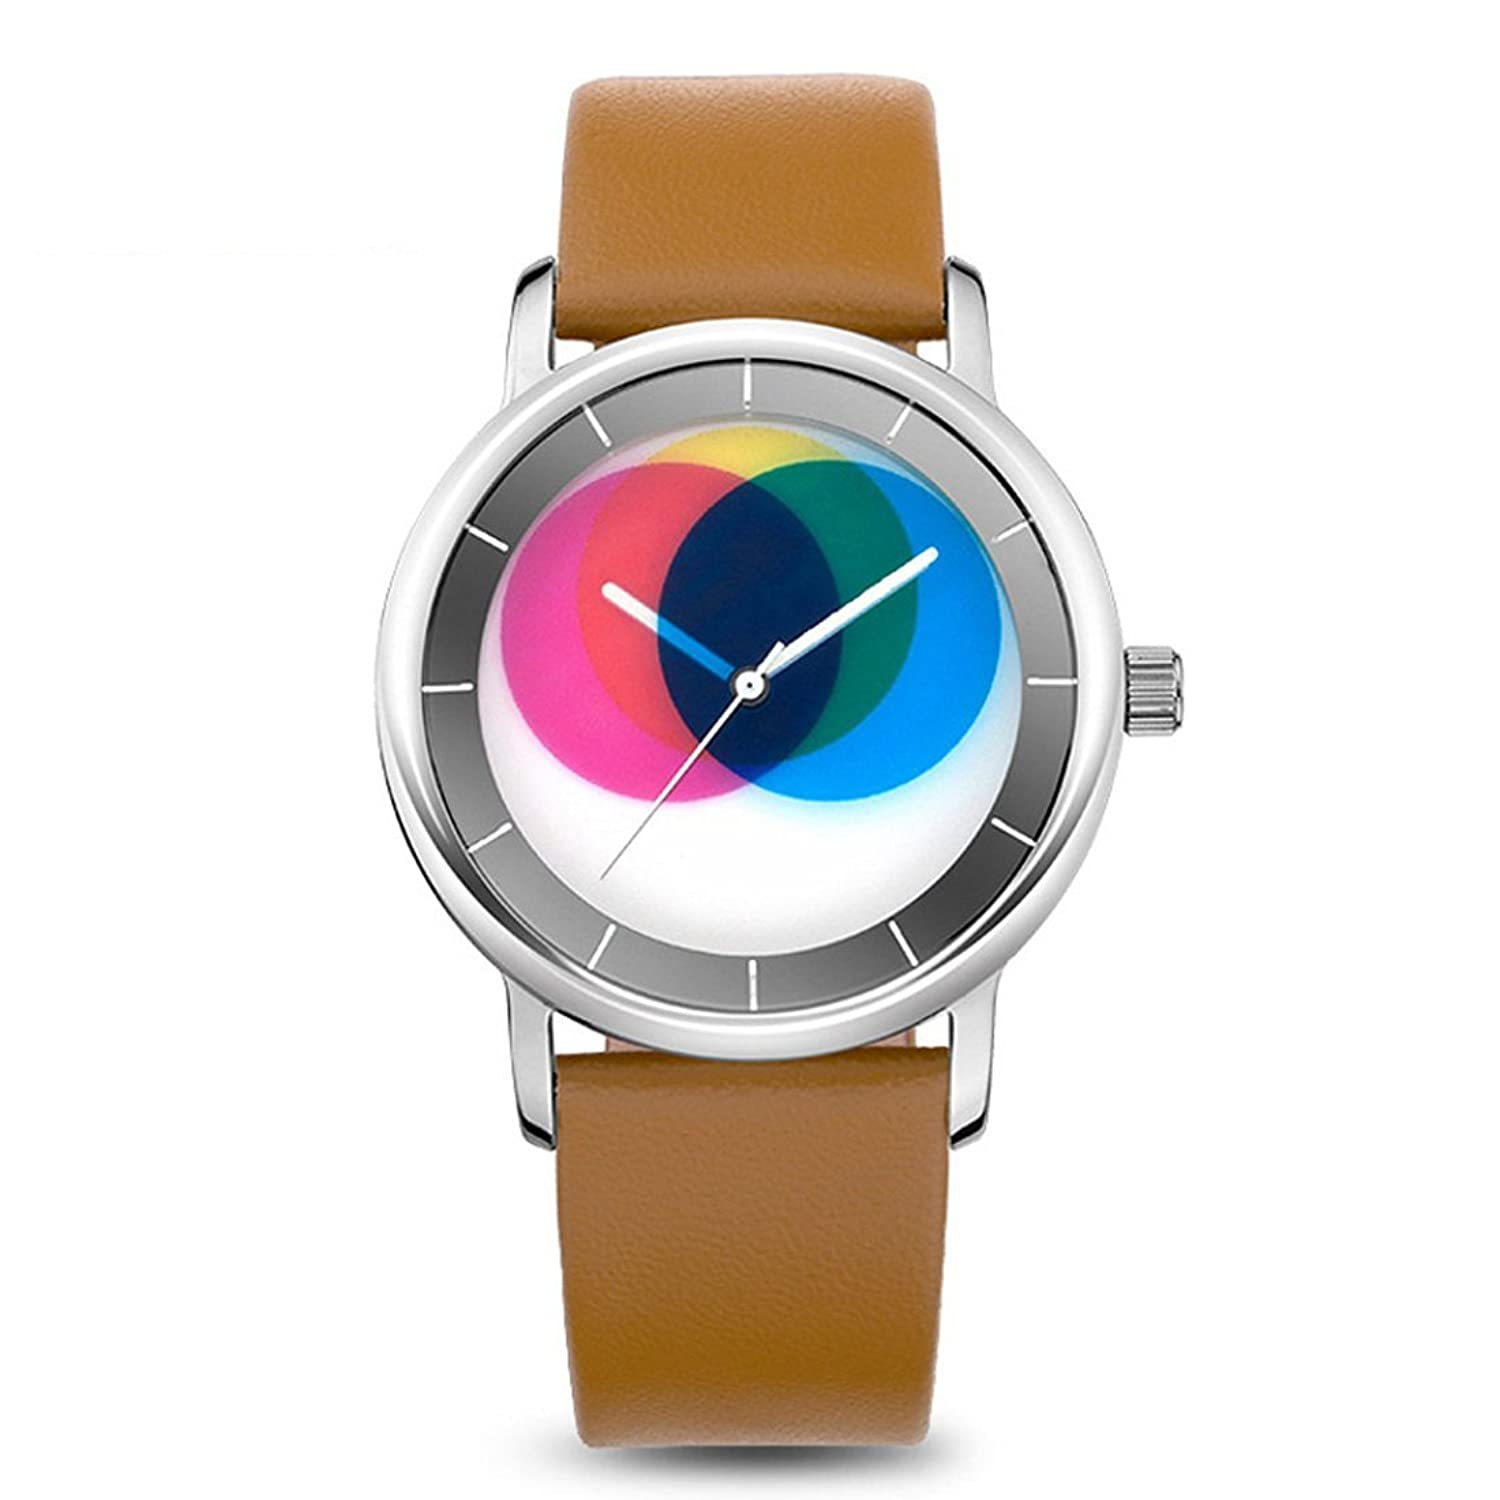 time2u Damen Fashion Concept minimalistisch Wakefunktion Colorful Zifferblatt Business Frauen Quarzuhr Armbanduhr